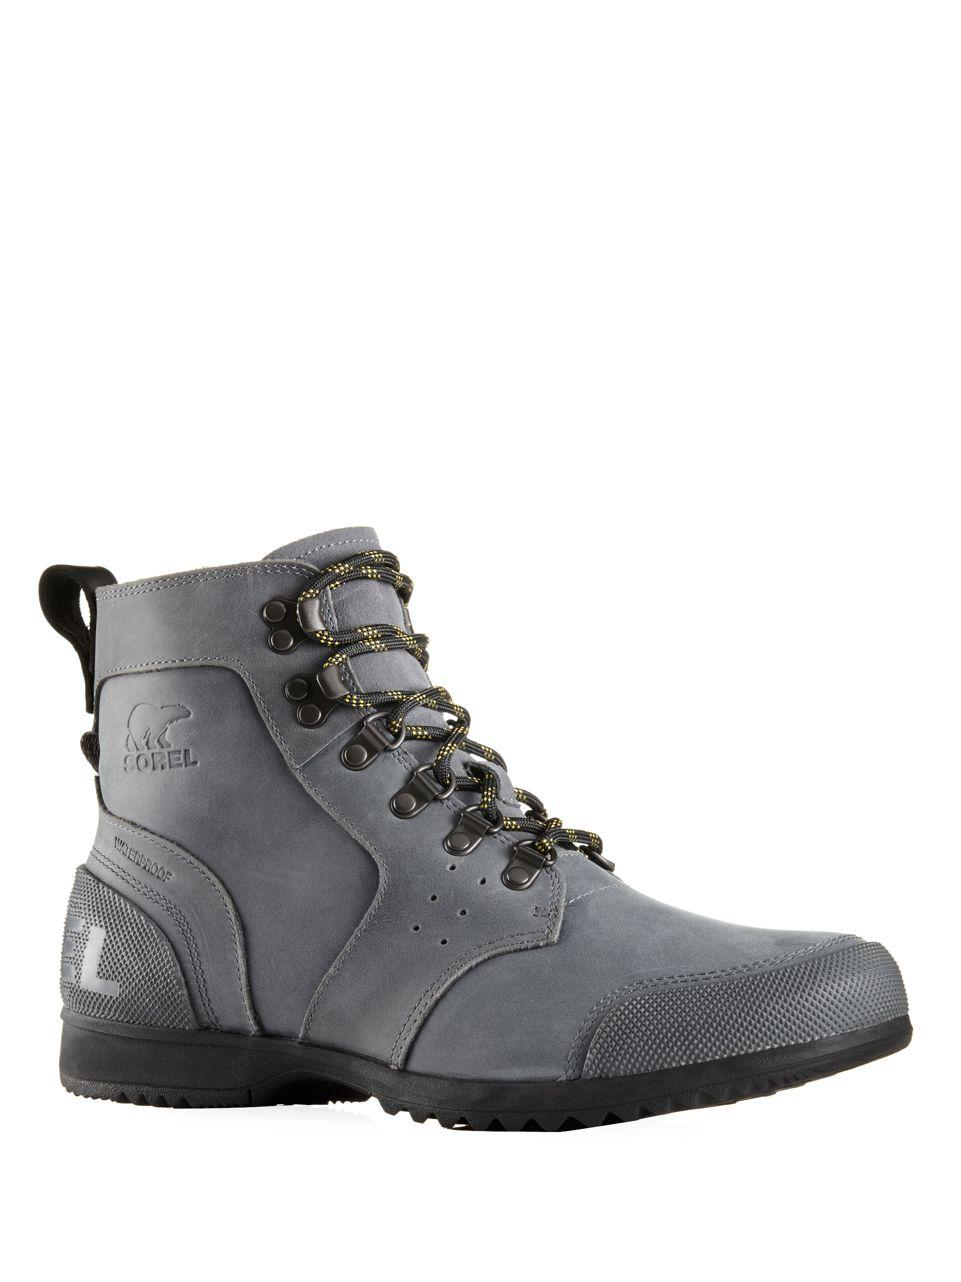 Lyst Sorel Ankeny Mid Hiking Boots In Gray For Men